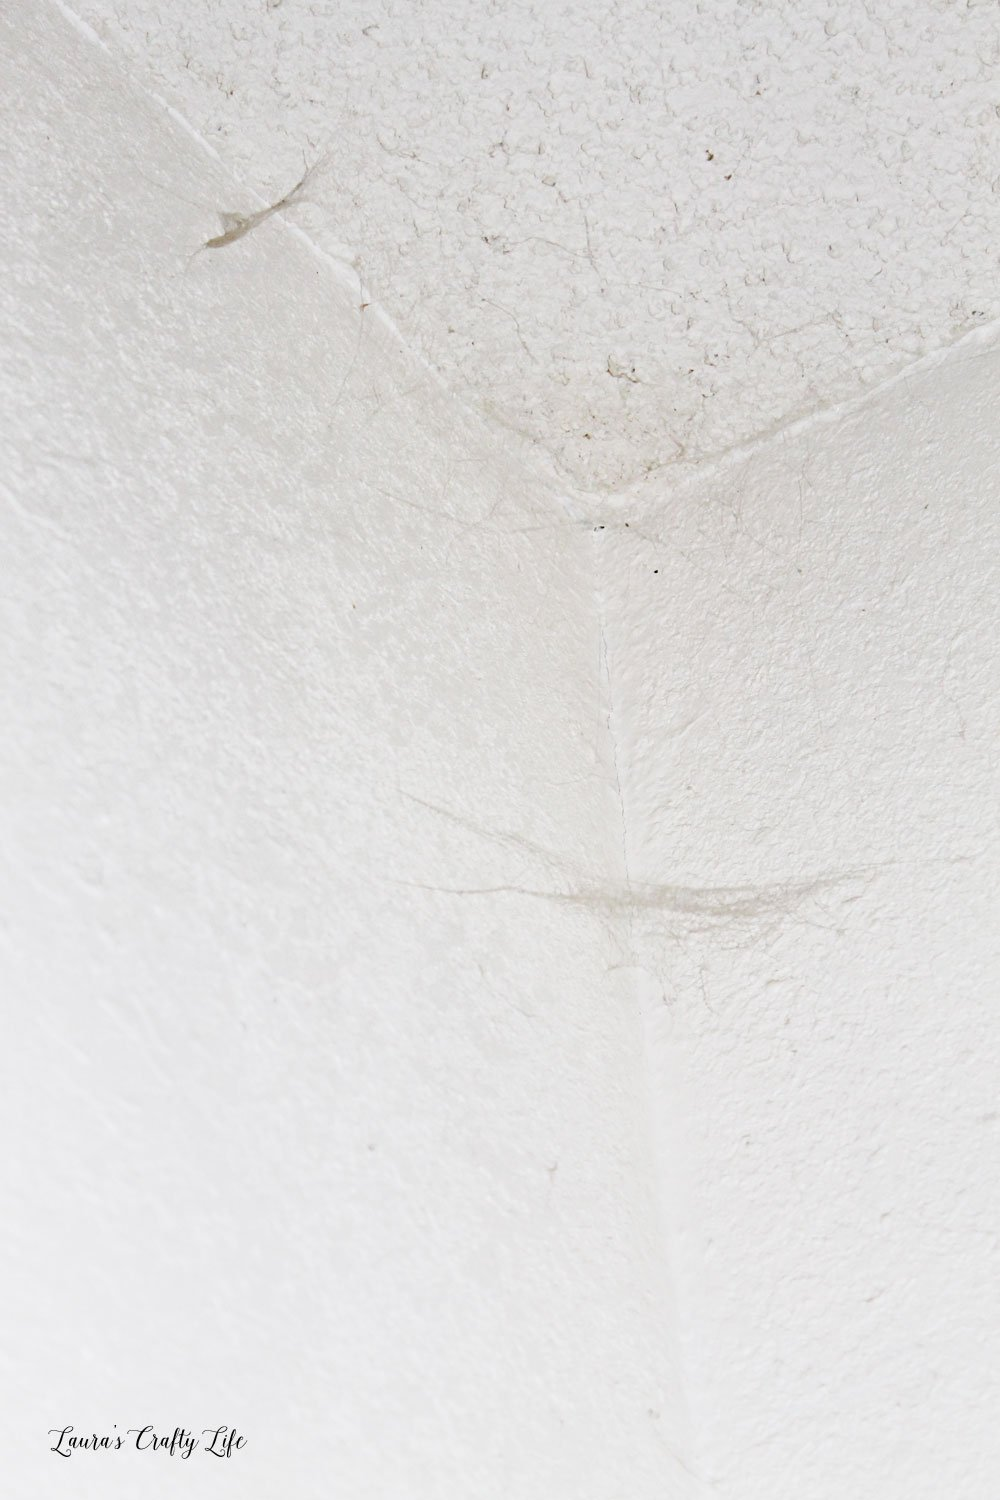 Dirty cobwebs in corner of room